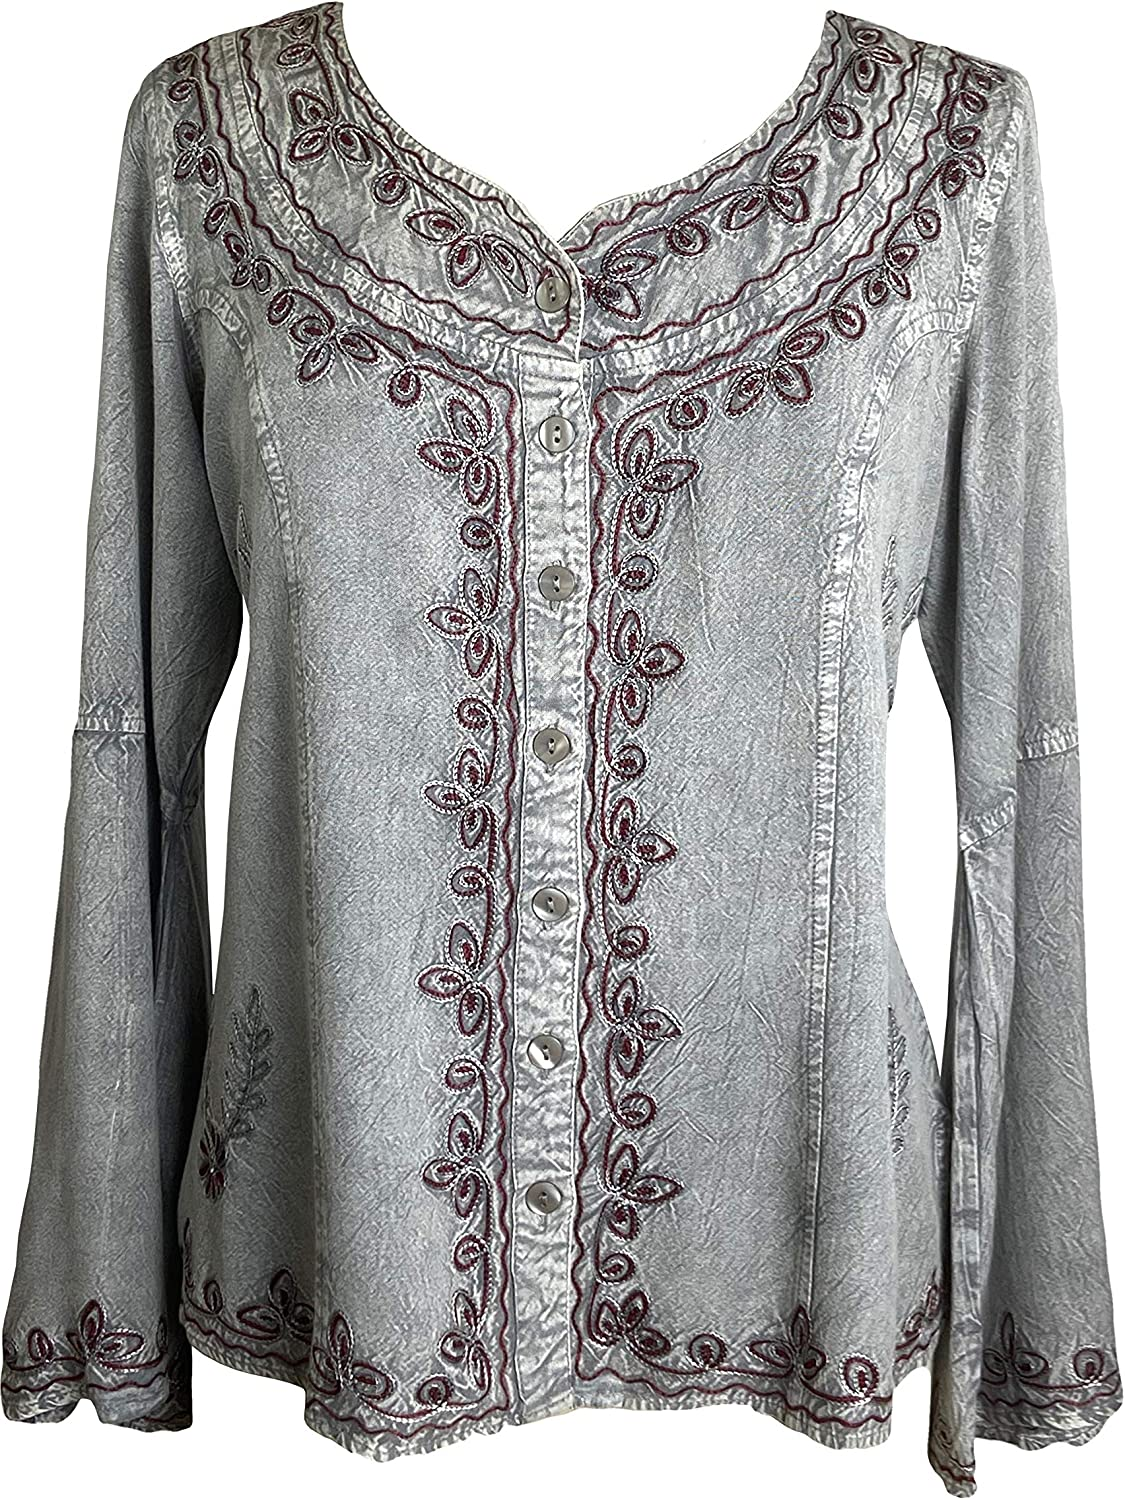 Agan Traders Women's Gypsy Medieval Embroidered Gothic Peasant Top Bell Sleeve Blouse Top